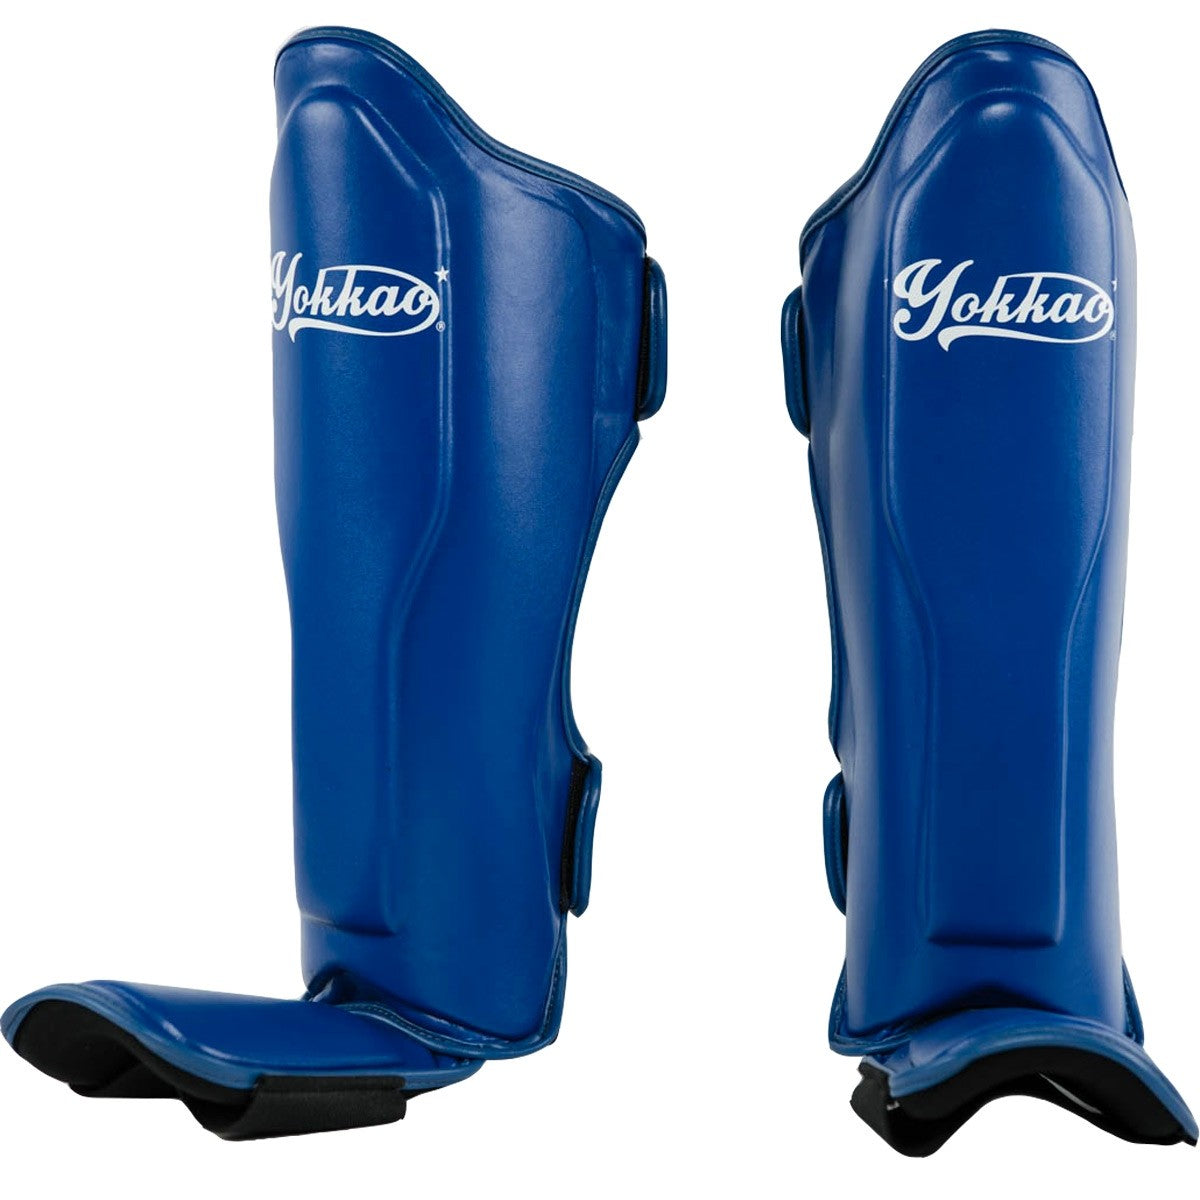 VERTIGO BLUE SHIN GUARDS - Pandemic Fight Gear Inc.